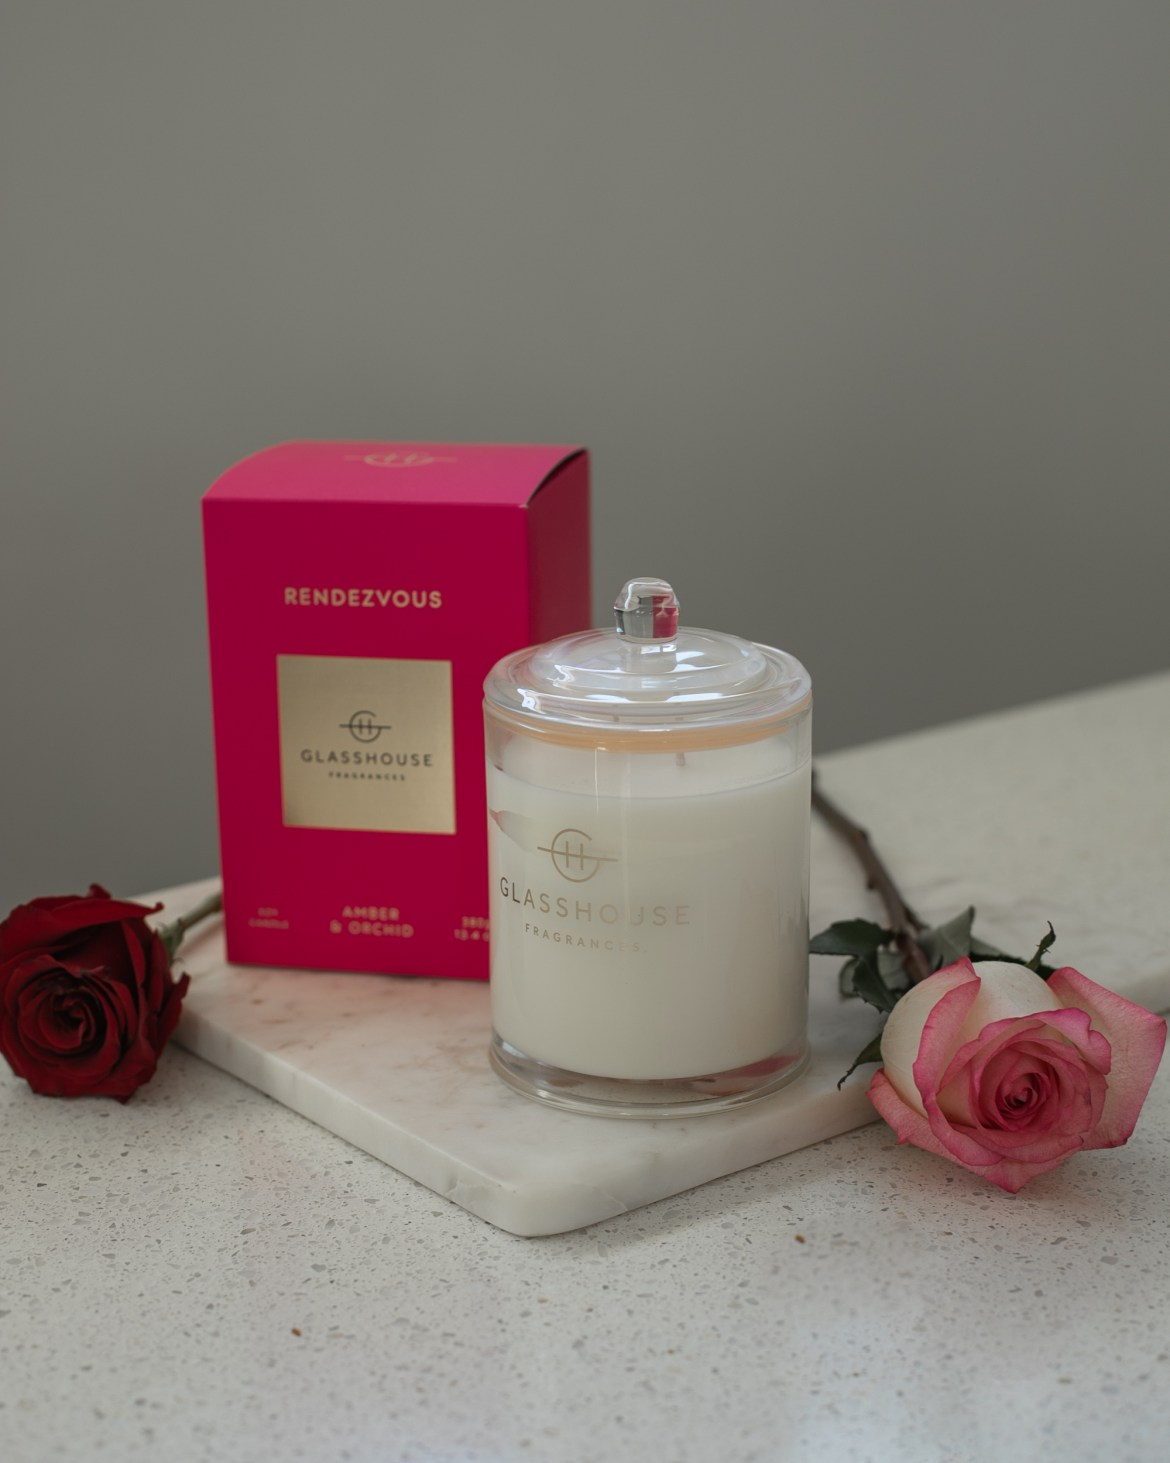 Glasshouse candle for Valentine's Day